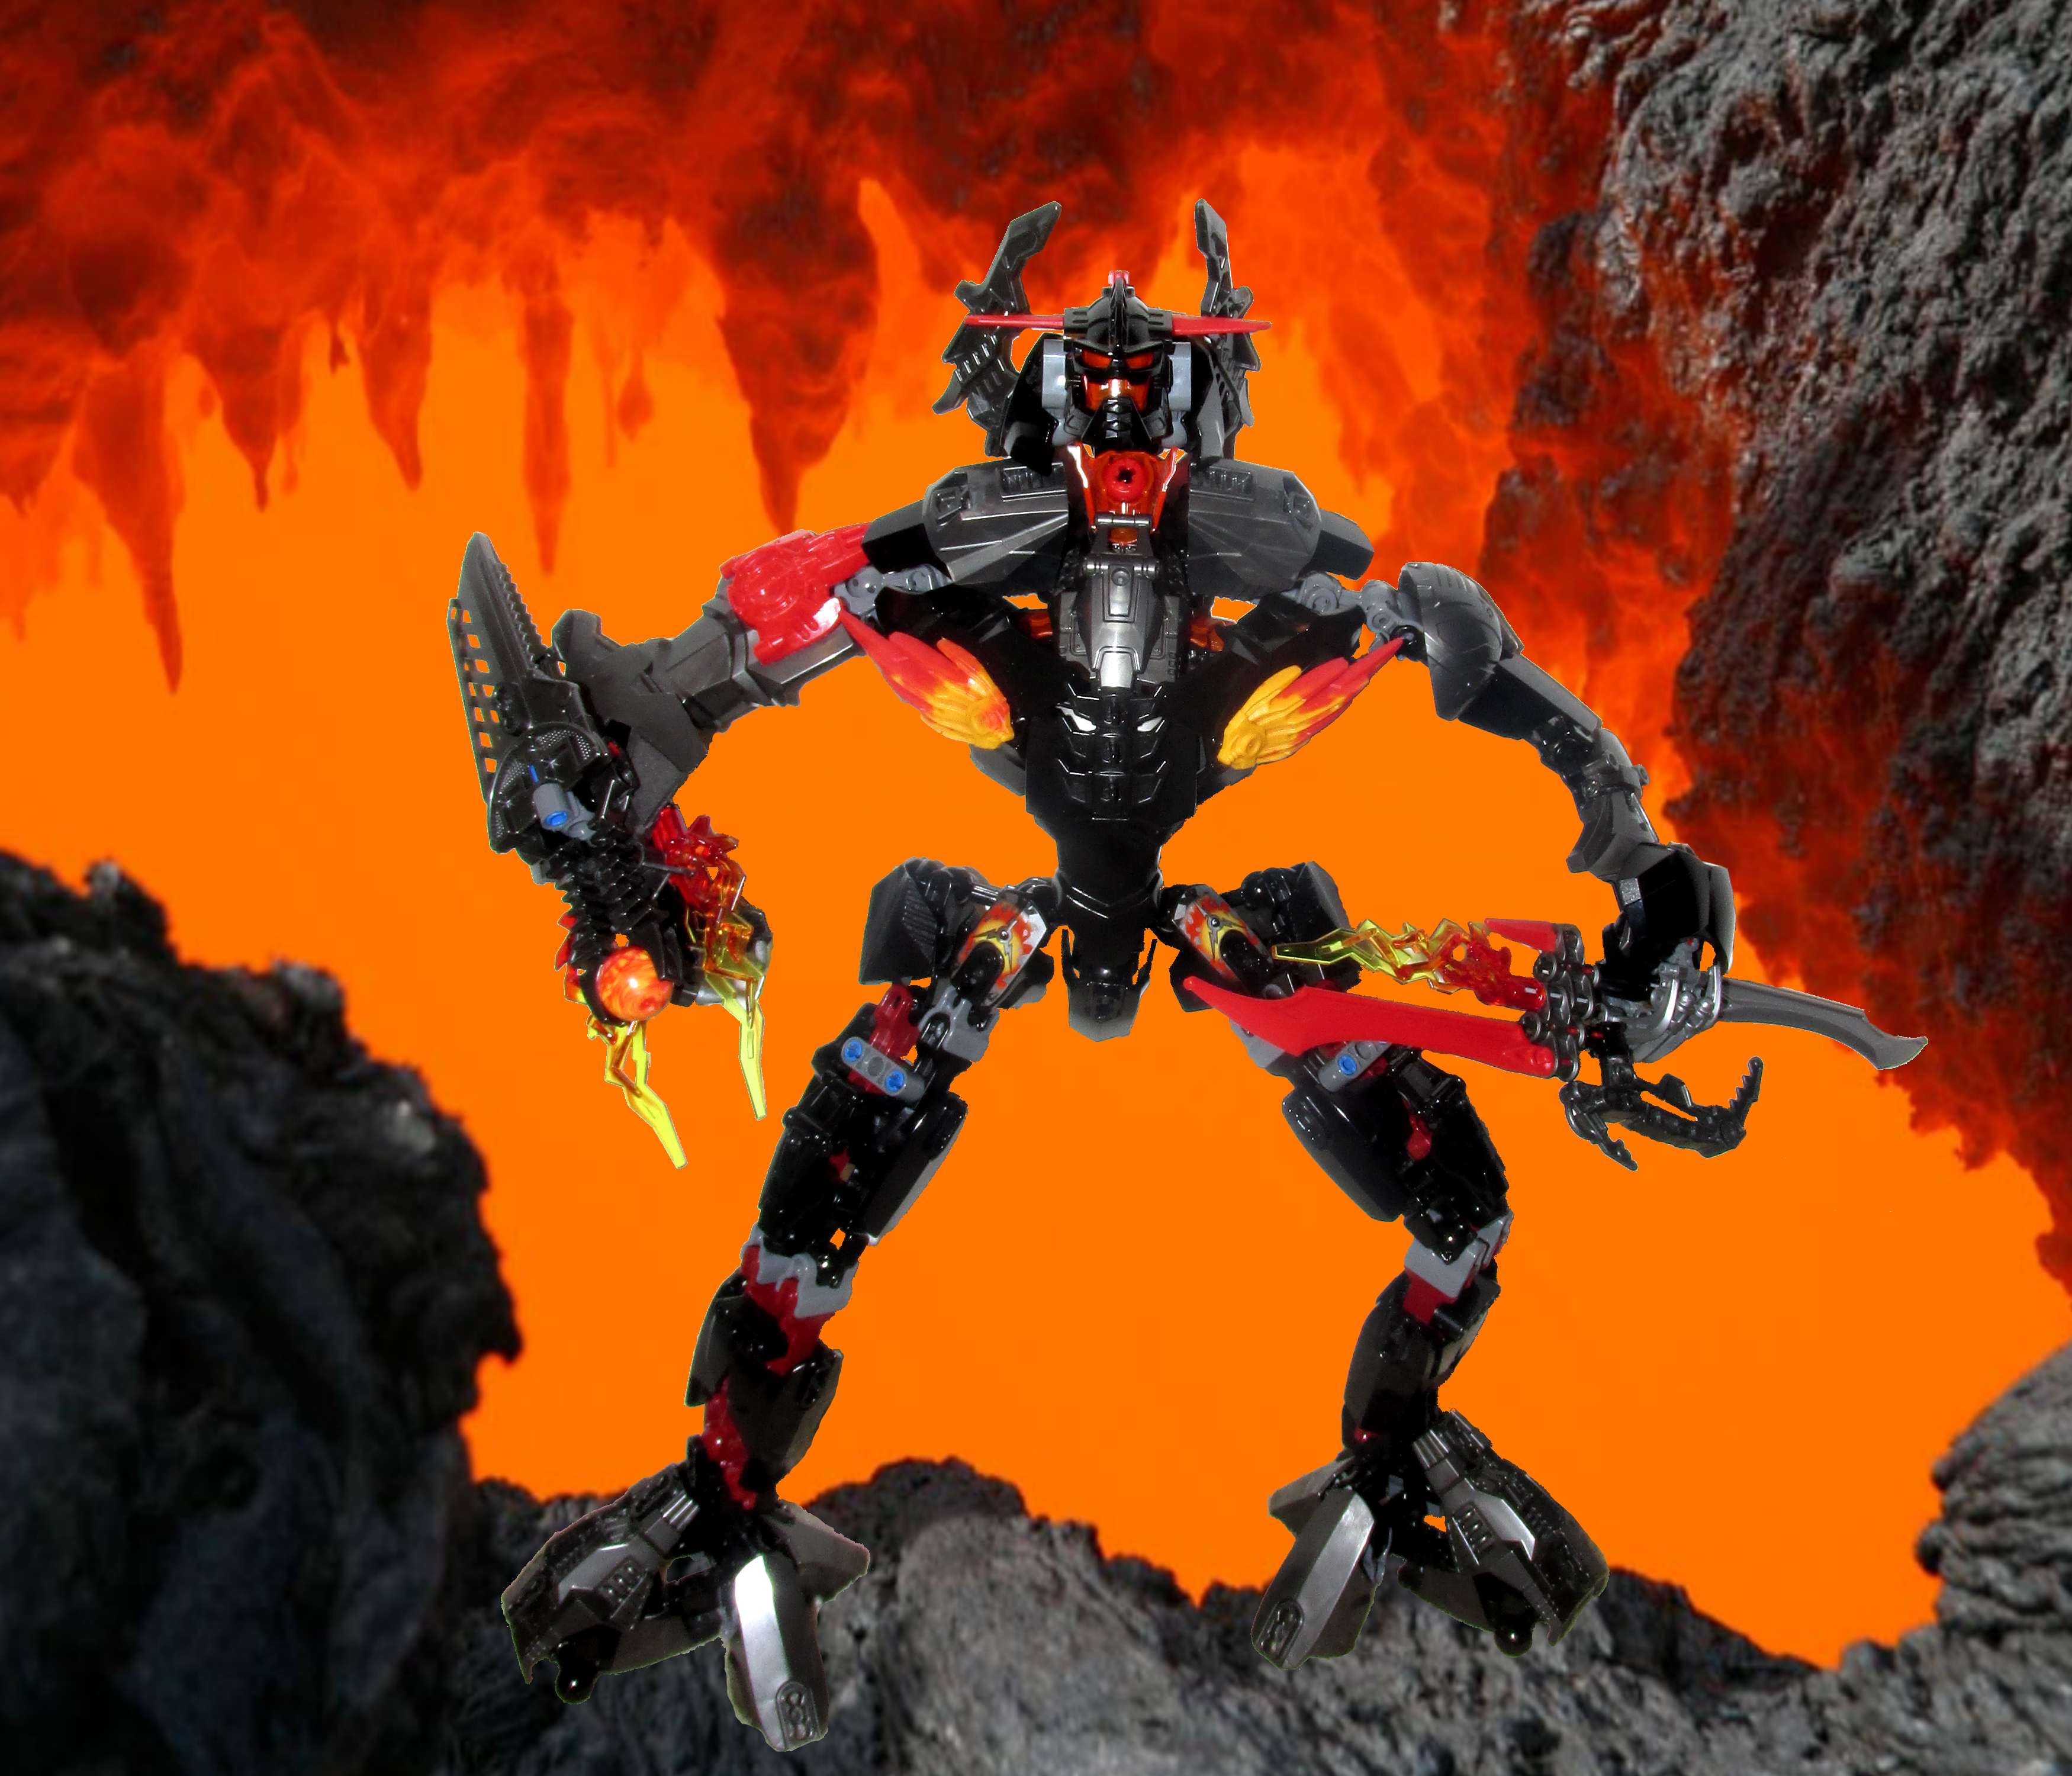 Zigben photoshopped over a volcanic background